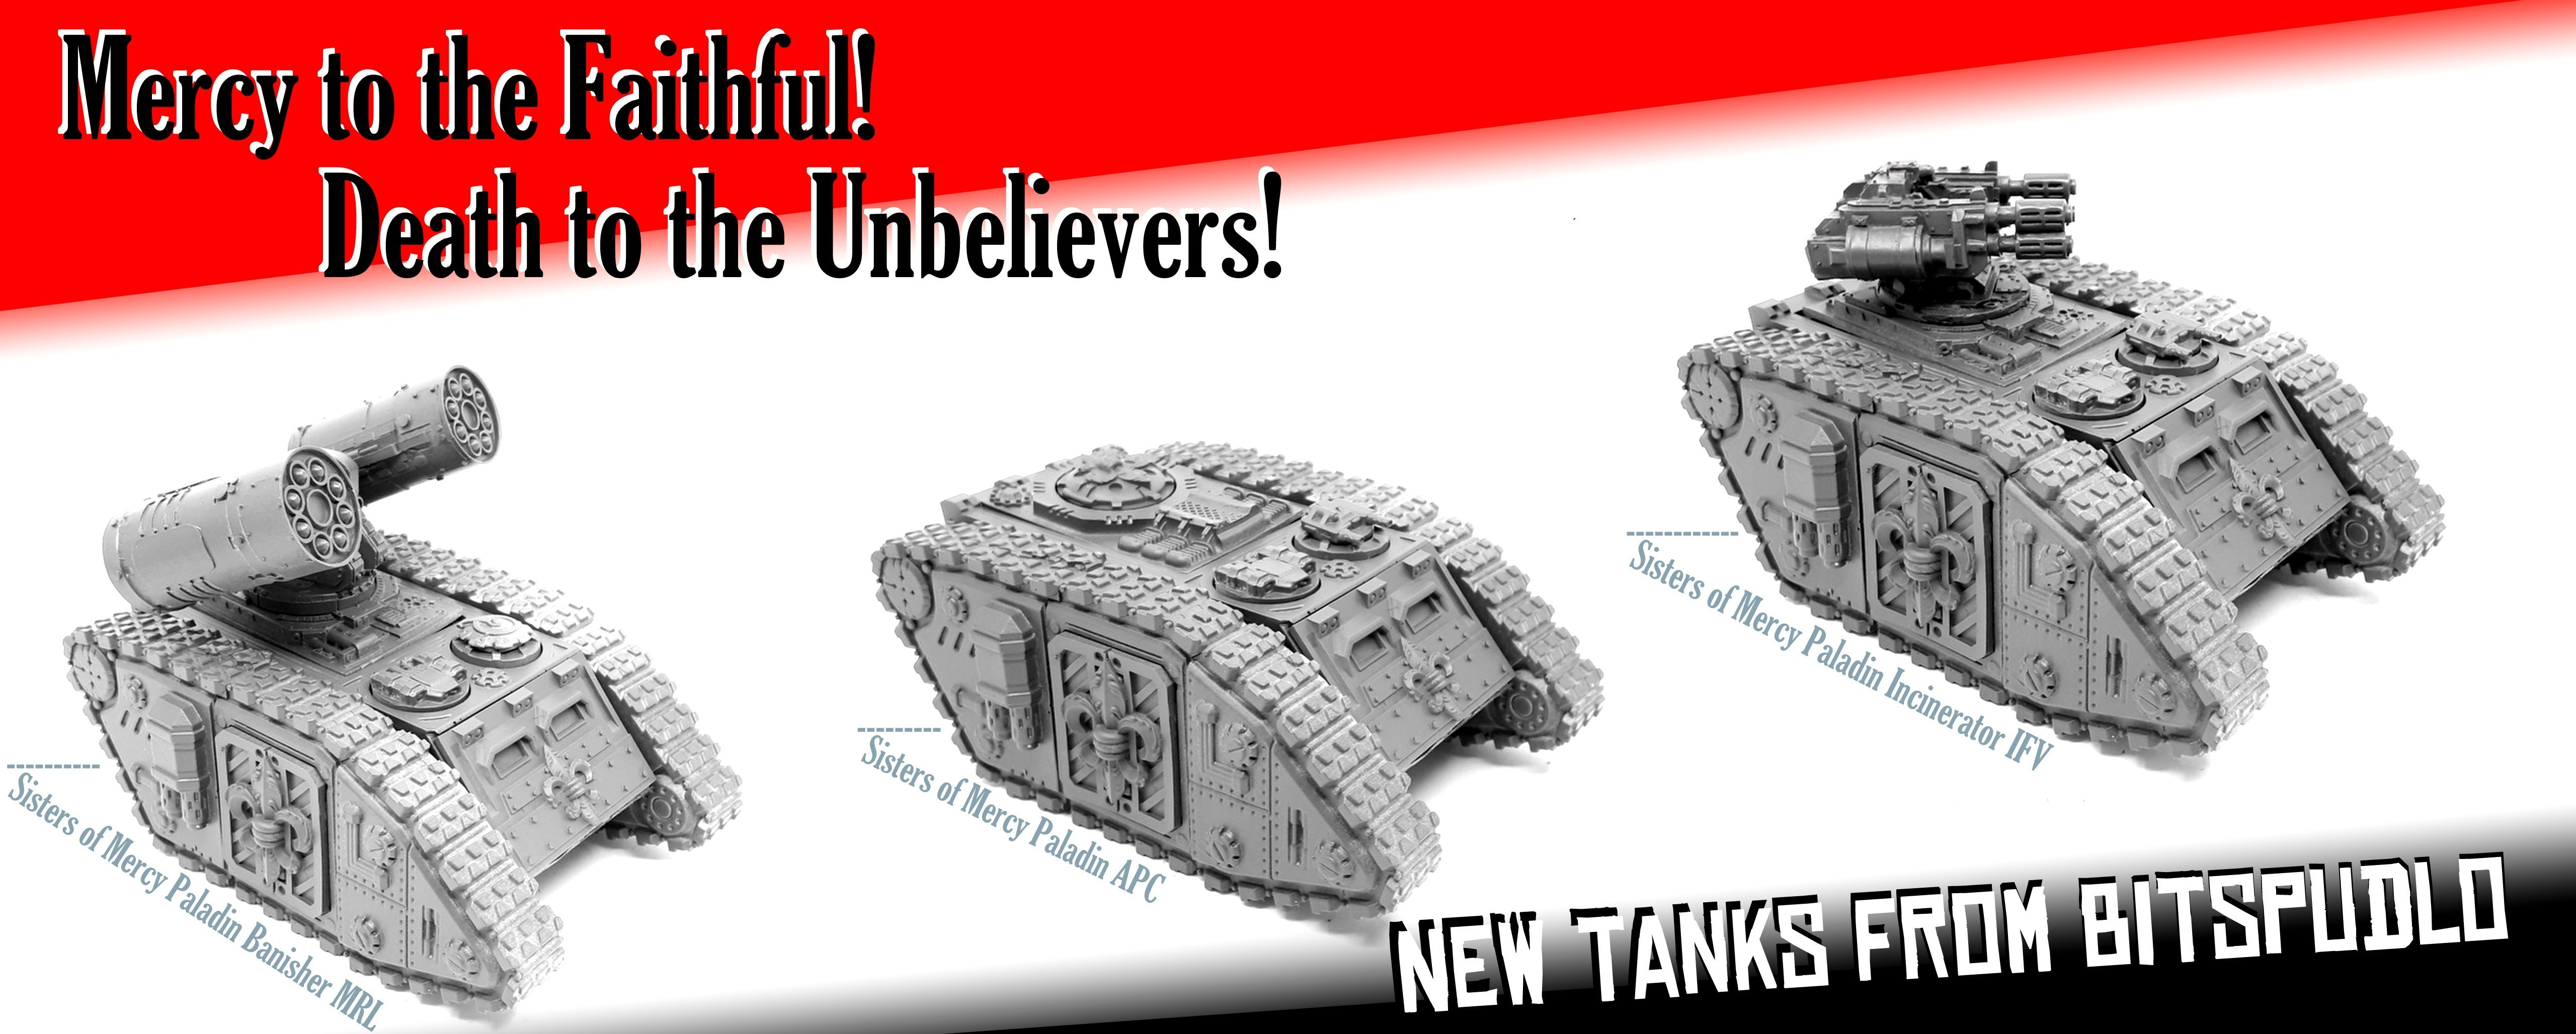 New tanks for Sisters of Mercy!